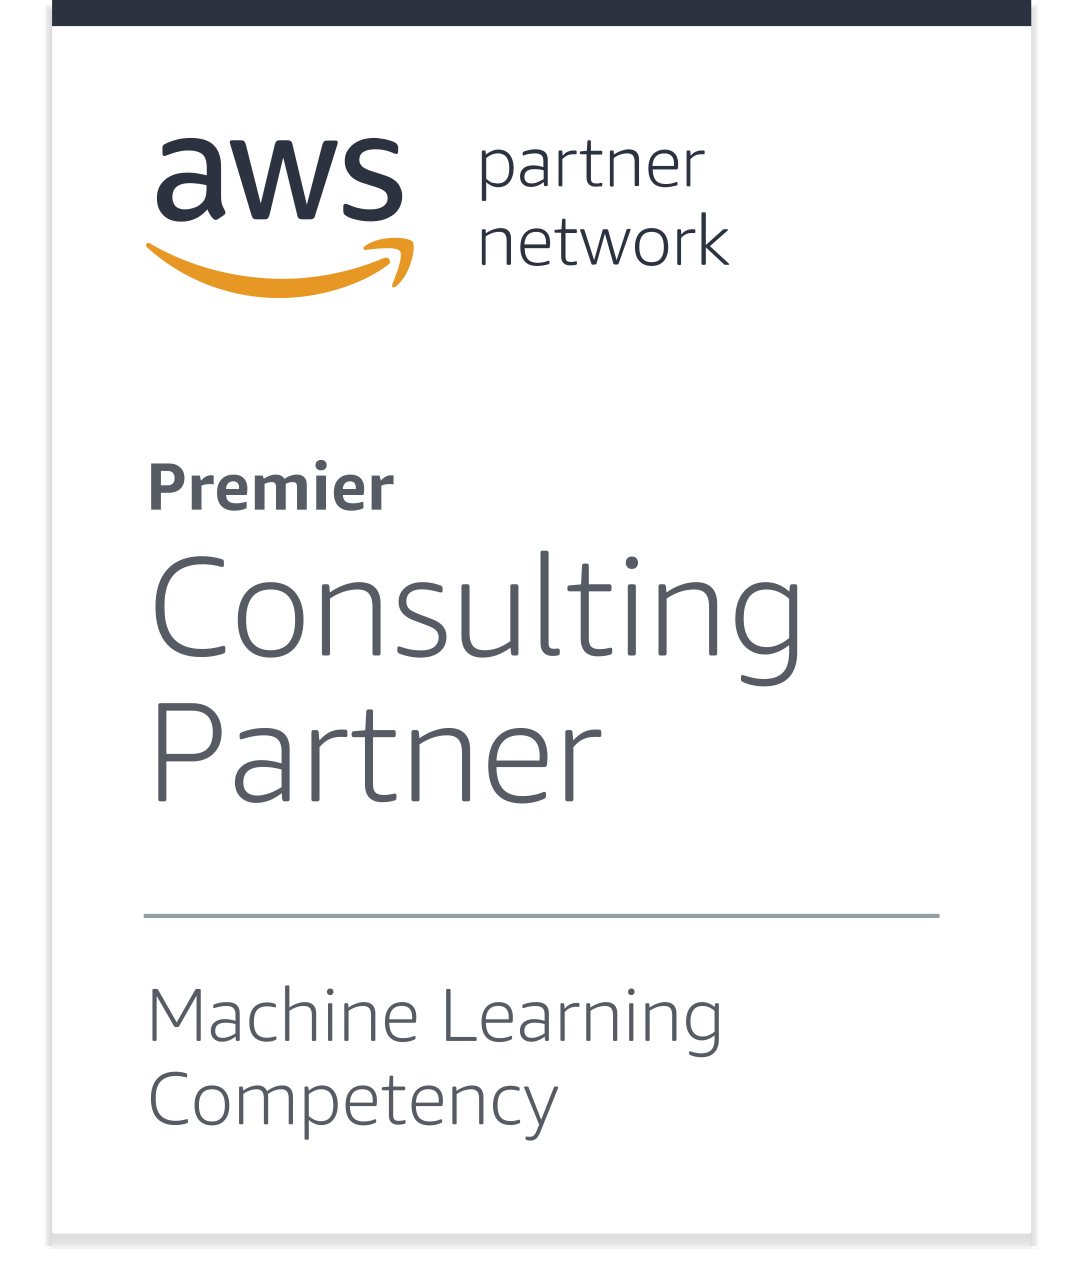 Machine Learning Competency